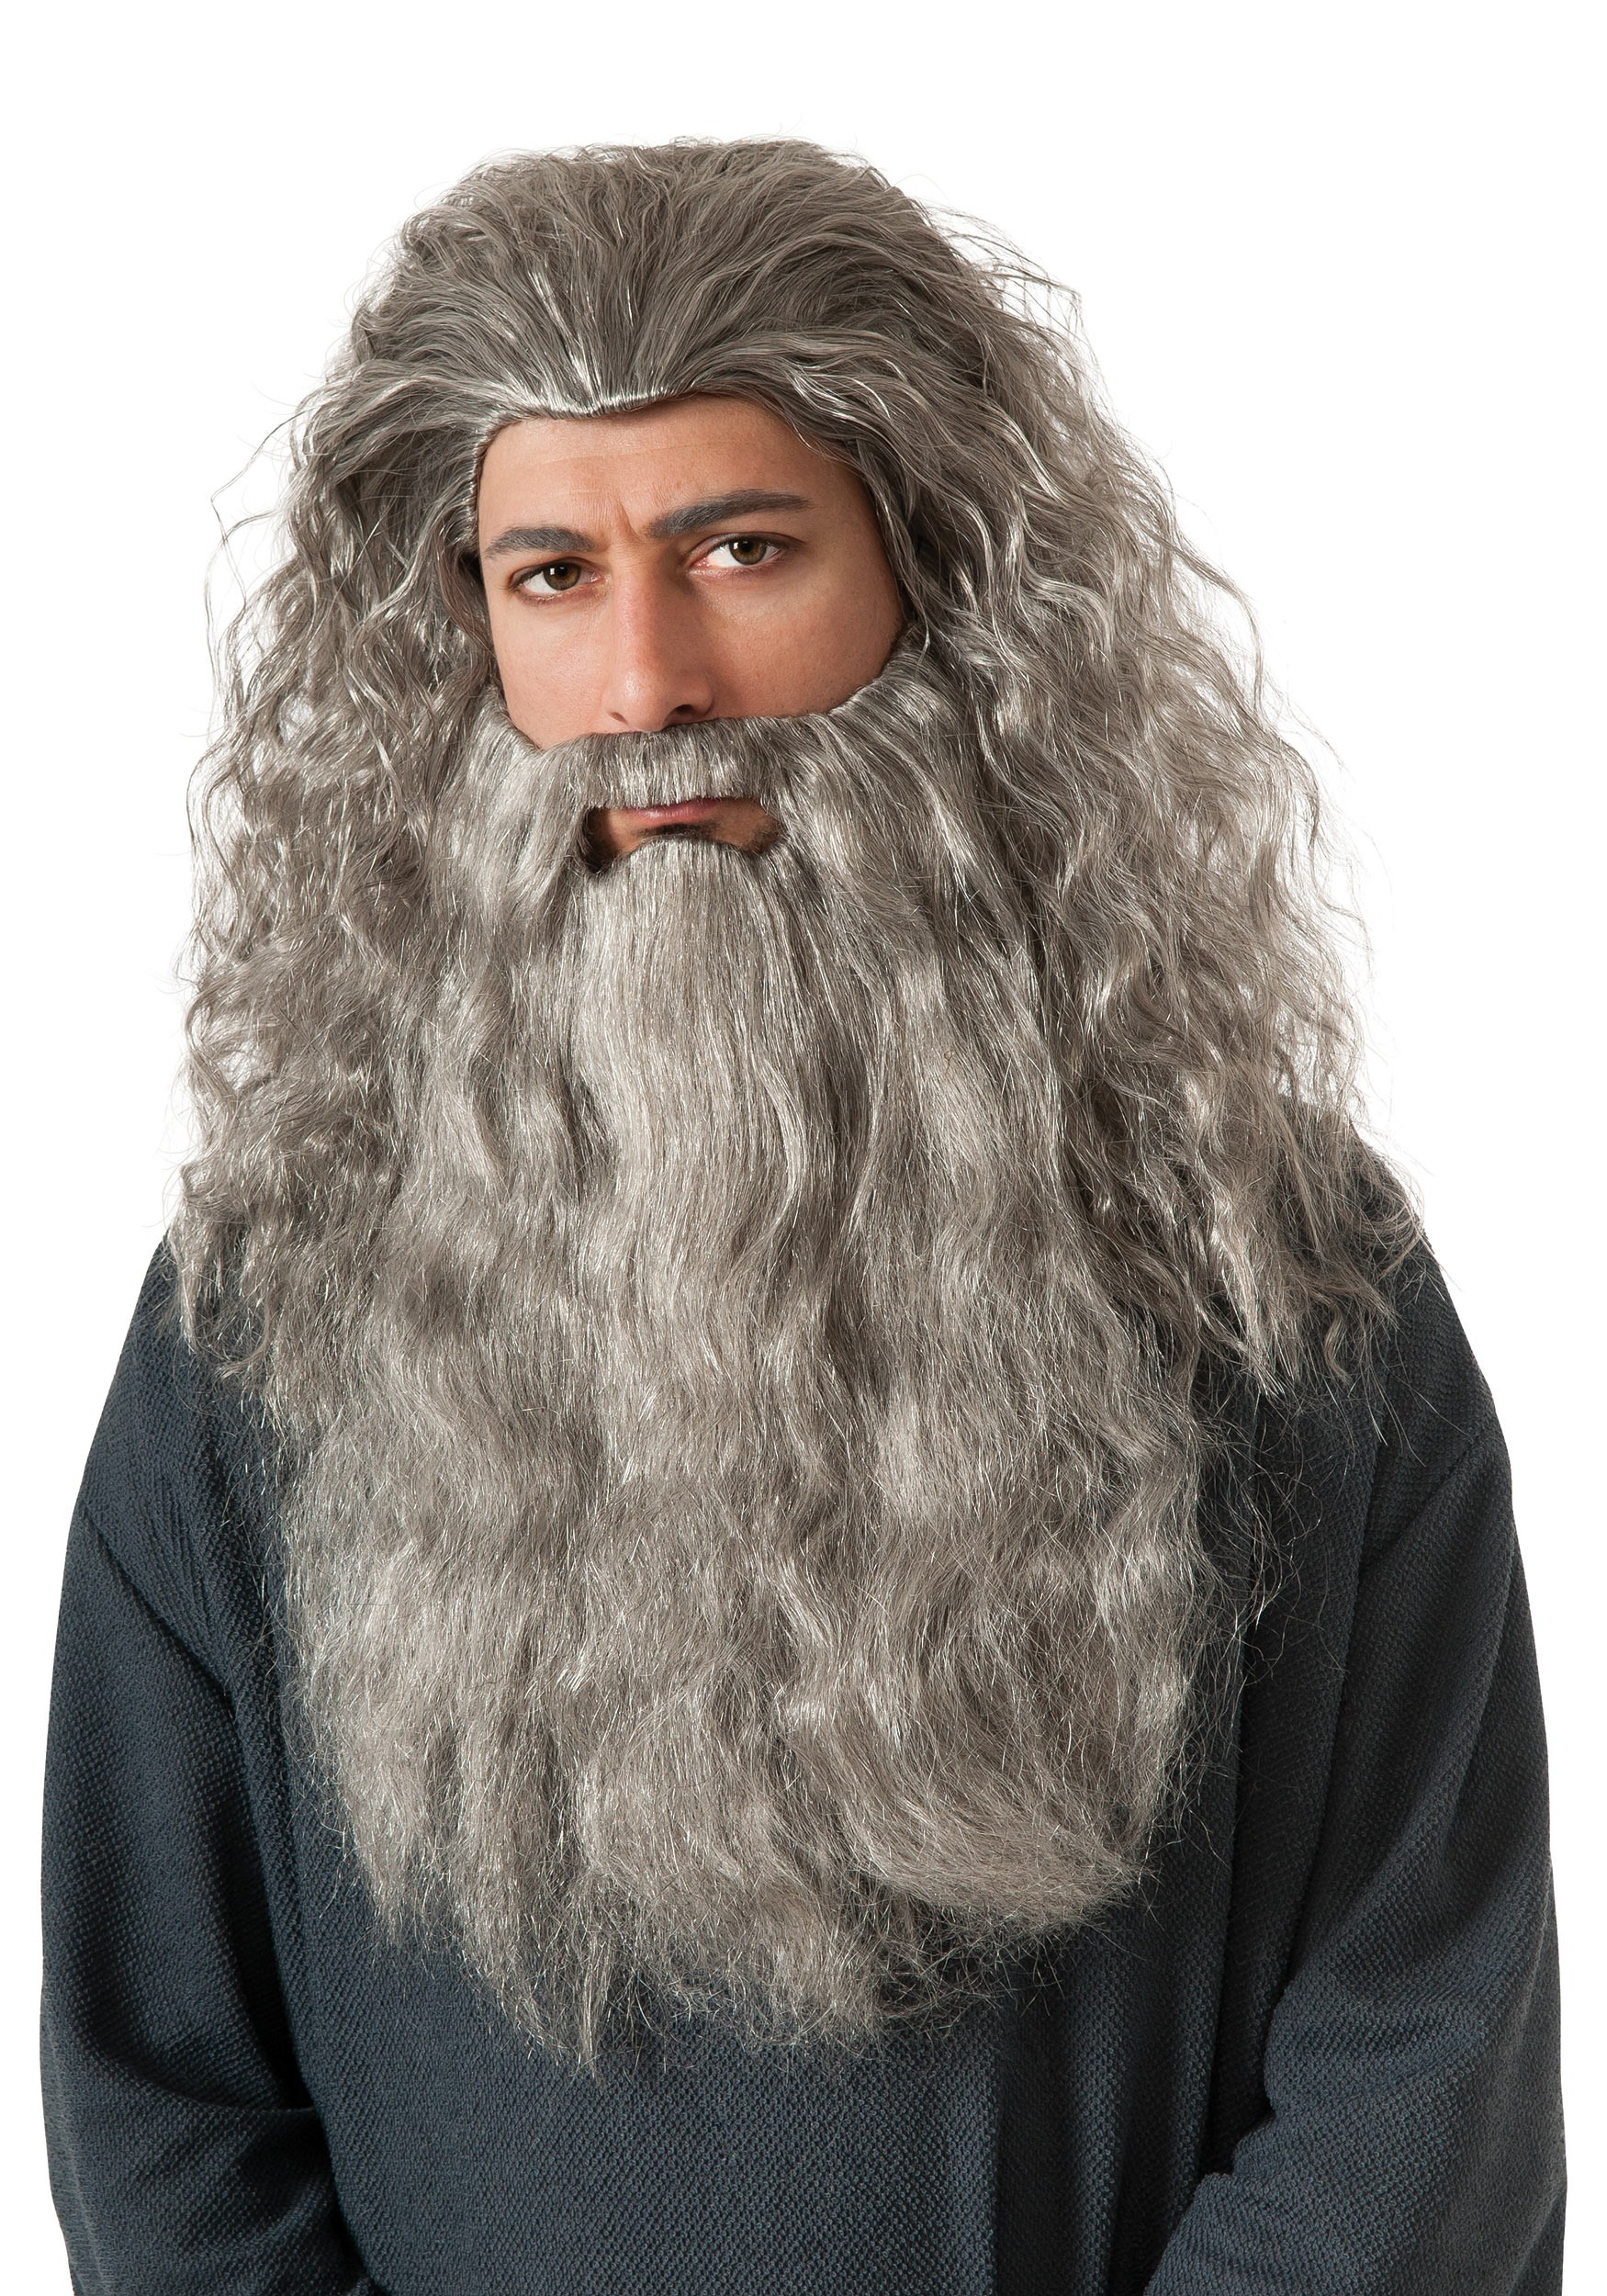 Gandalf Beard Kit